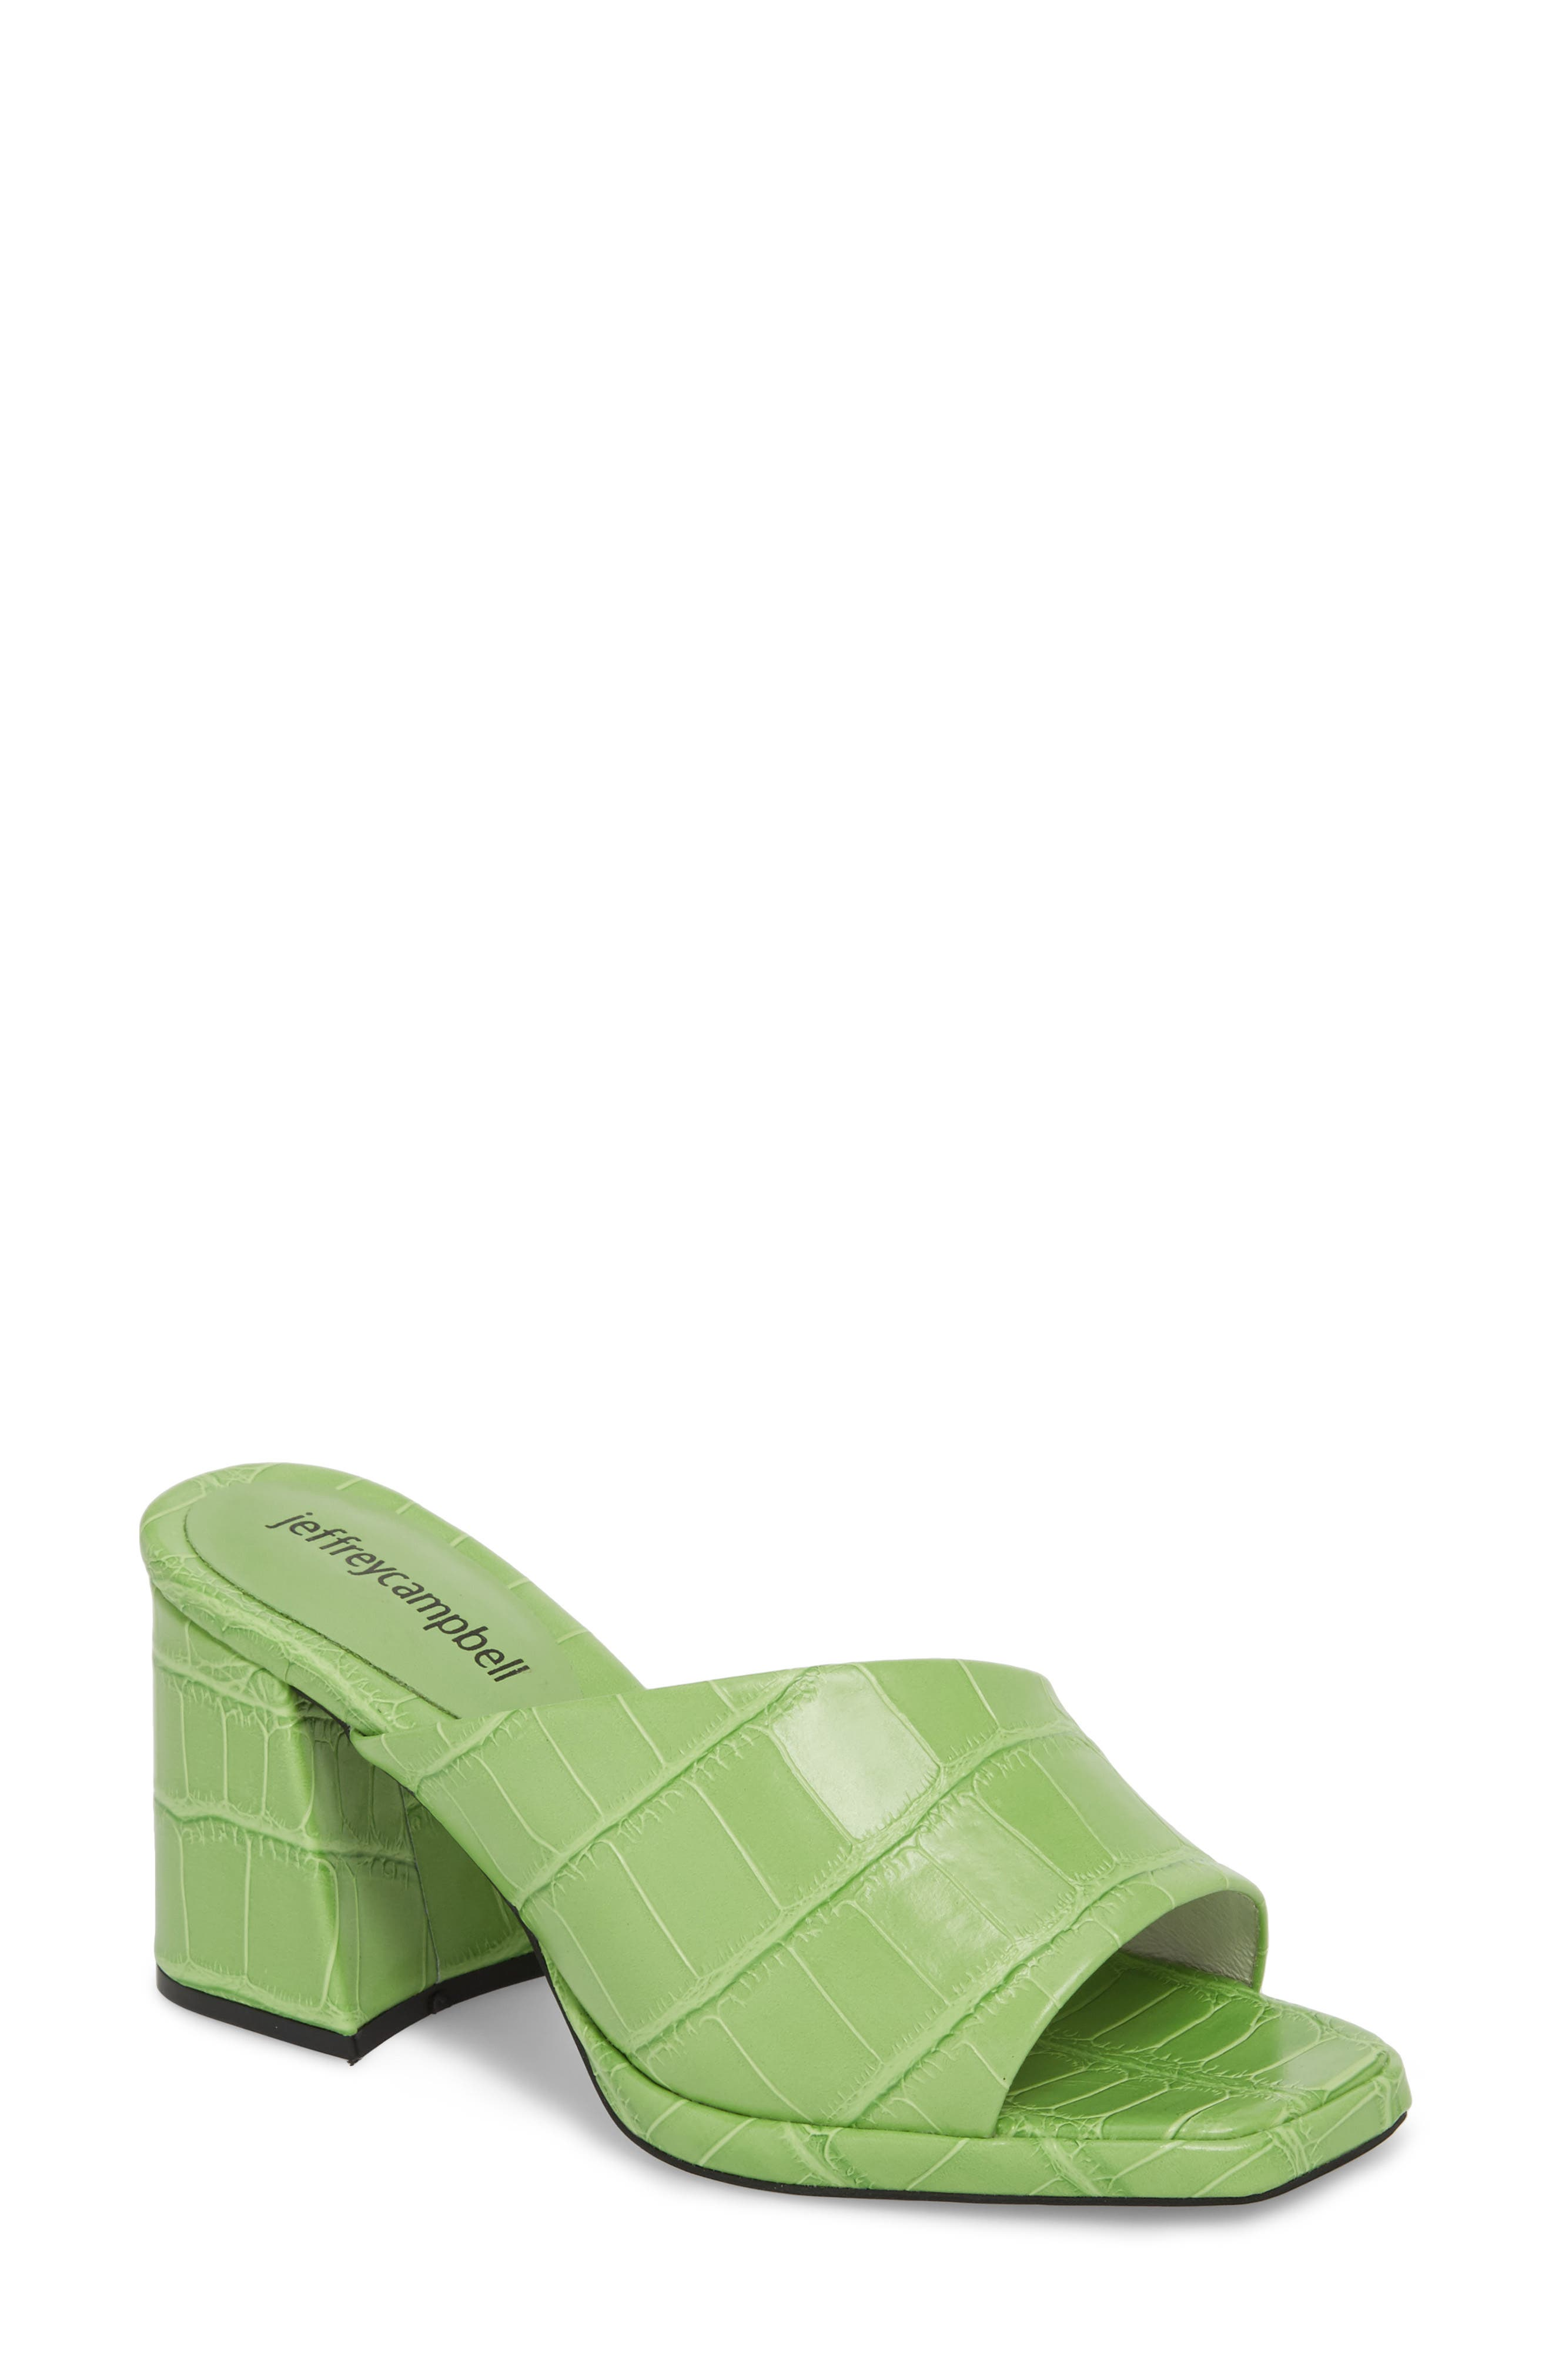 Suzuci Sandal,                         Main,                         color, Green Leather